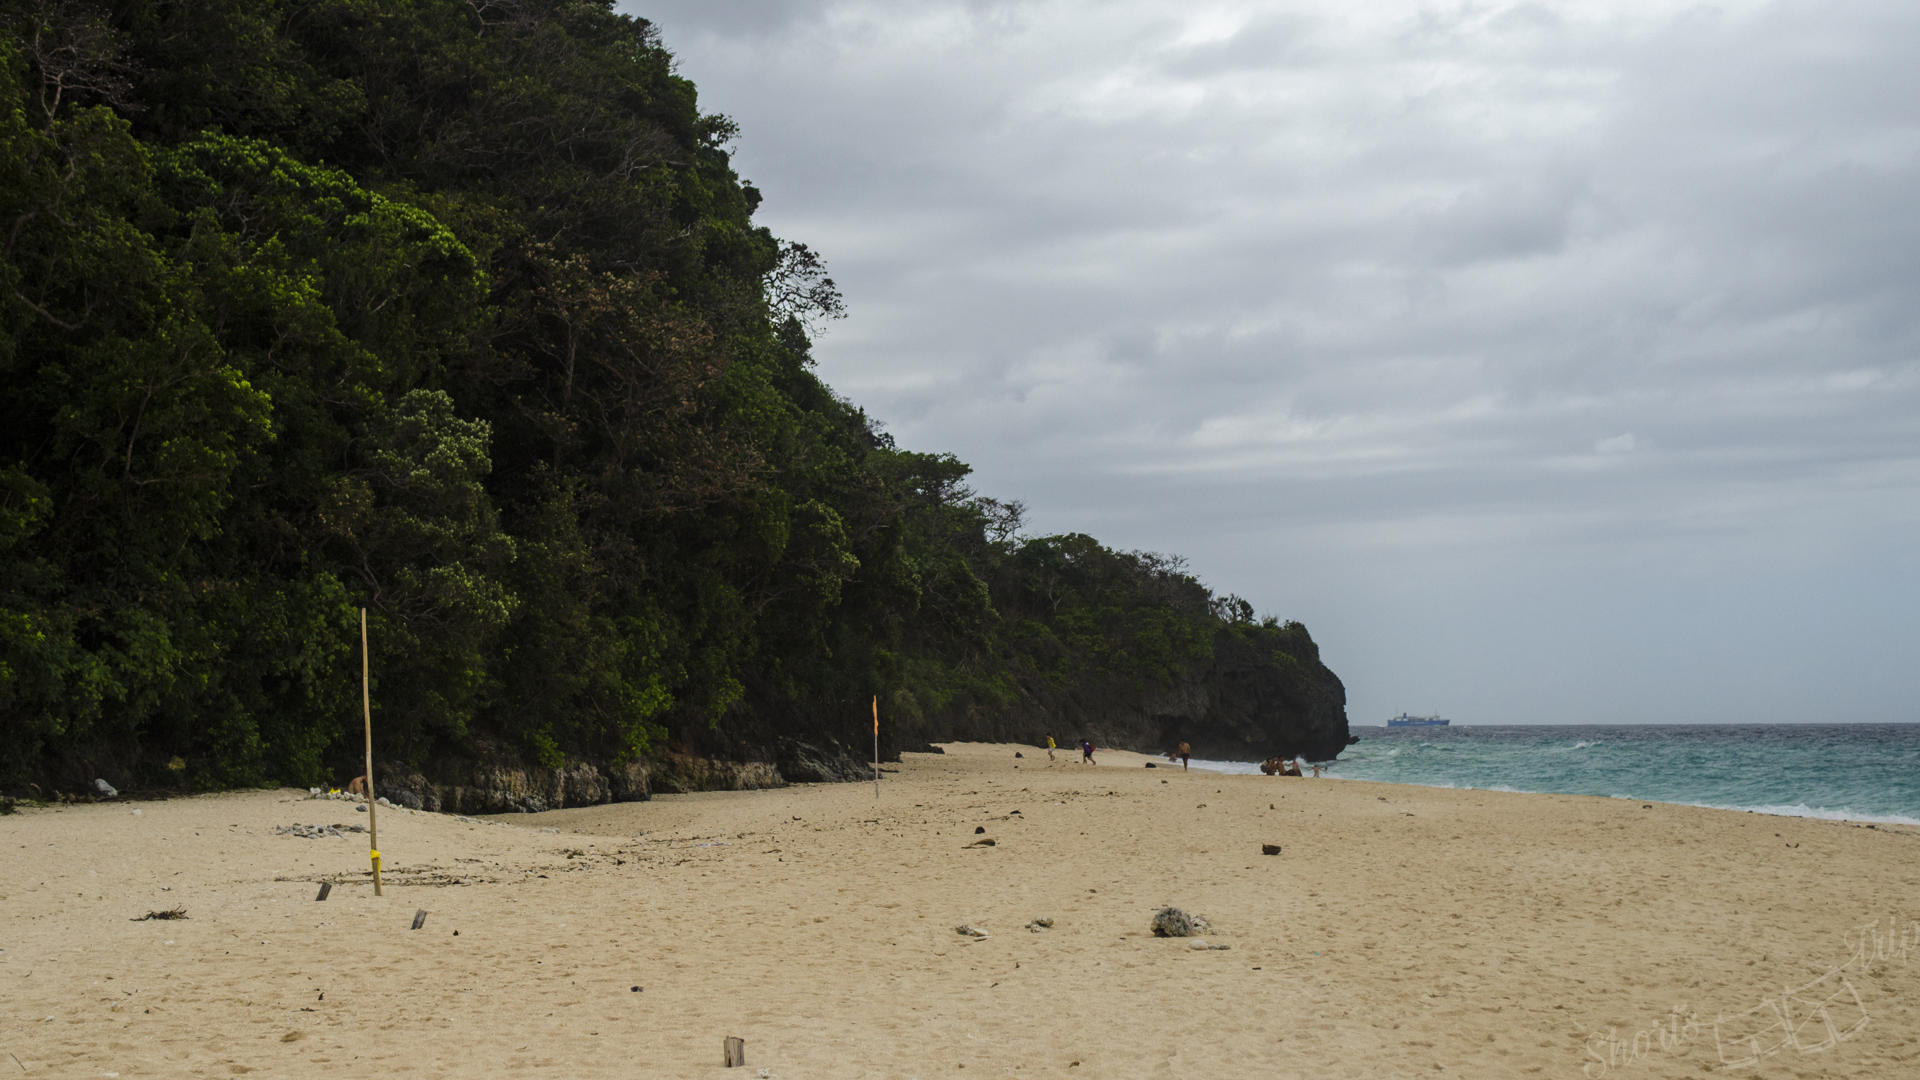 puka beach, boracay puka beach, puka beach without people